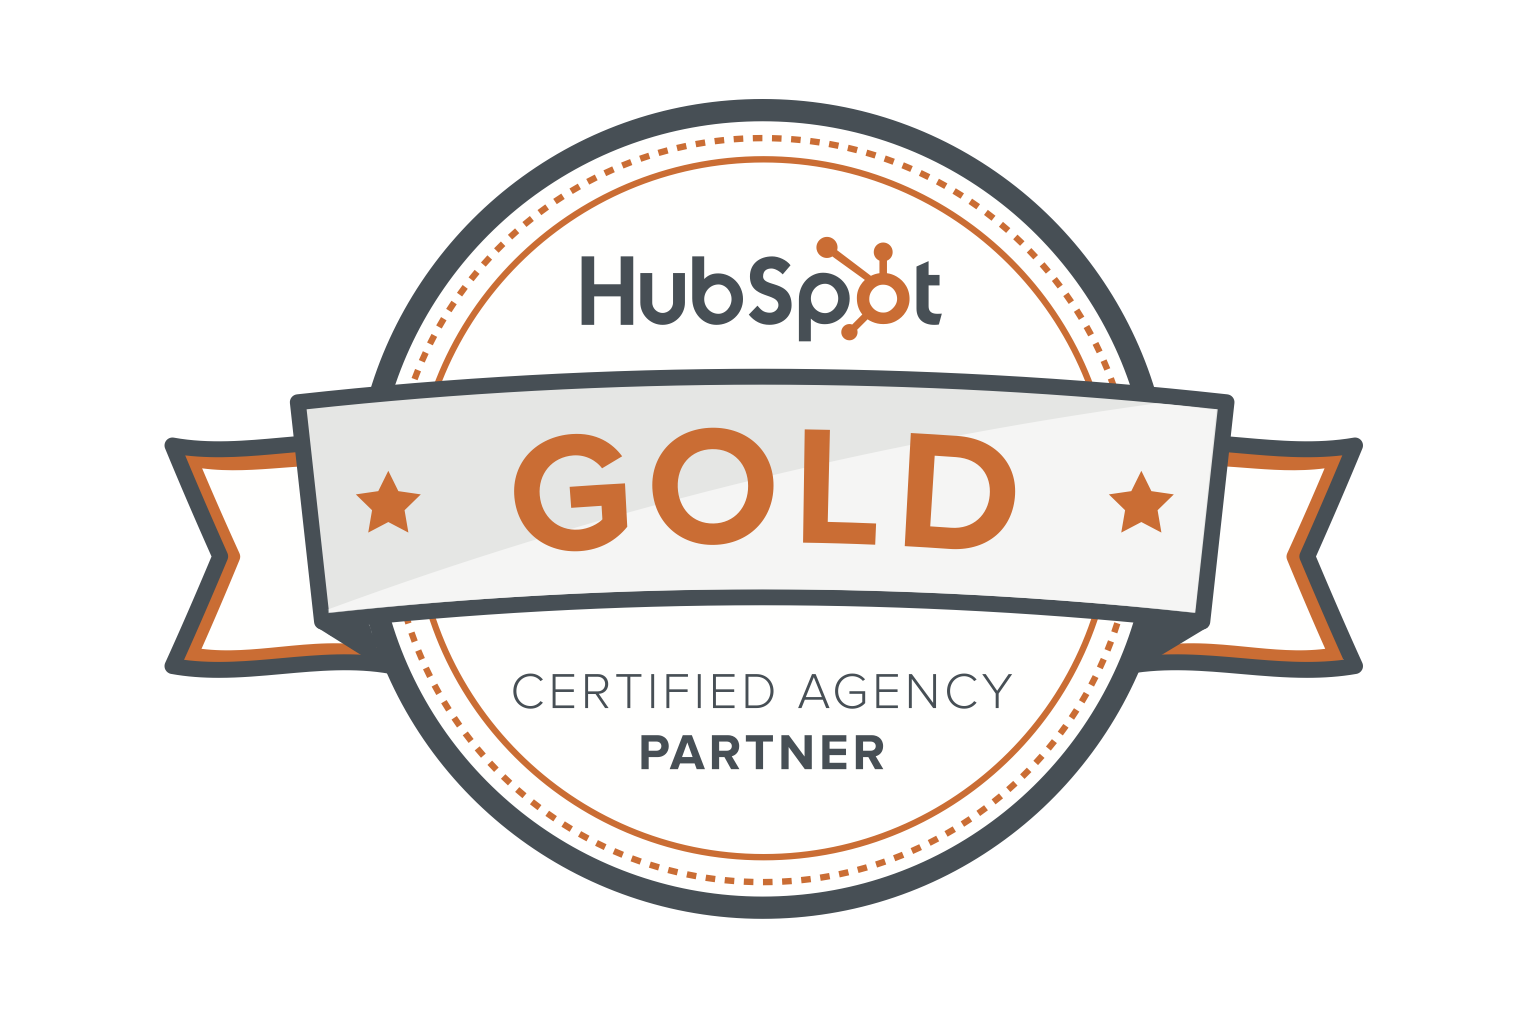 HubSpot_Gold_Partner_Badge.png